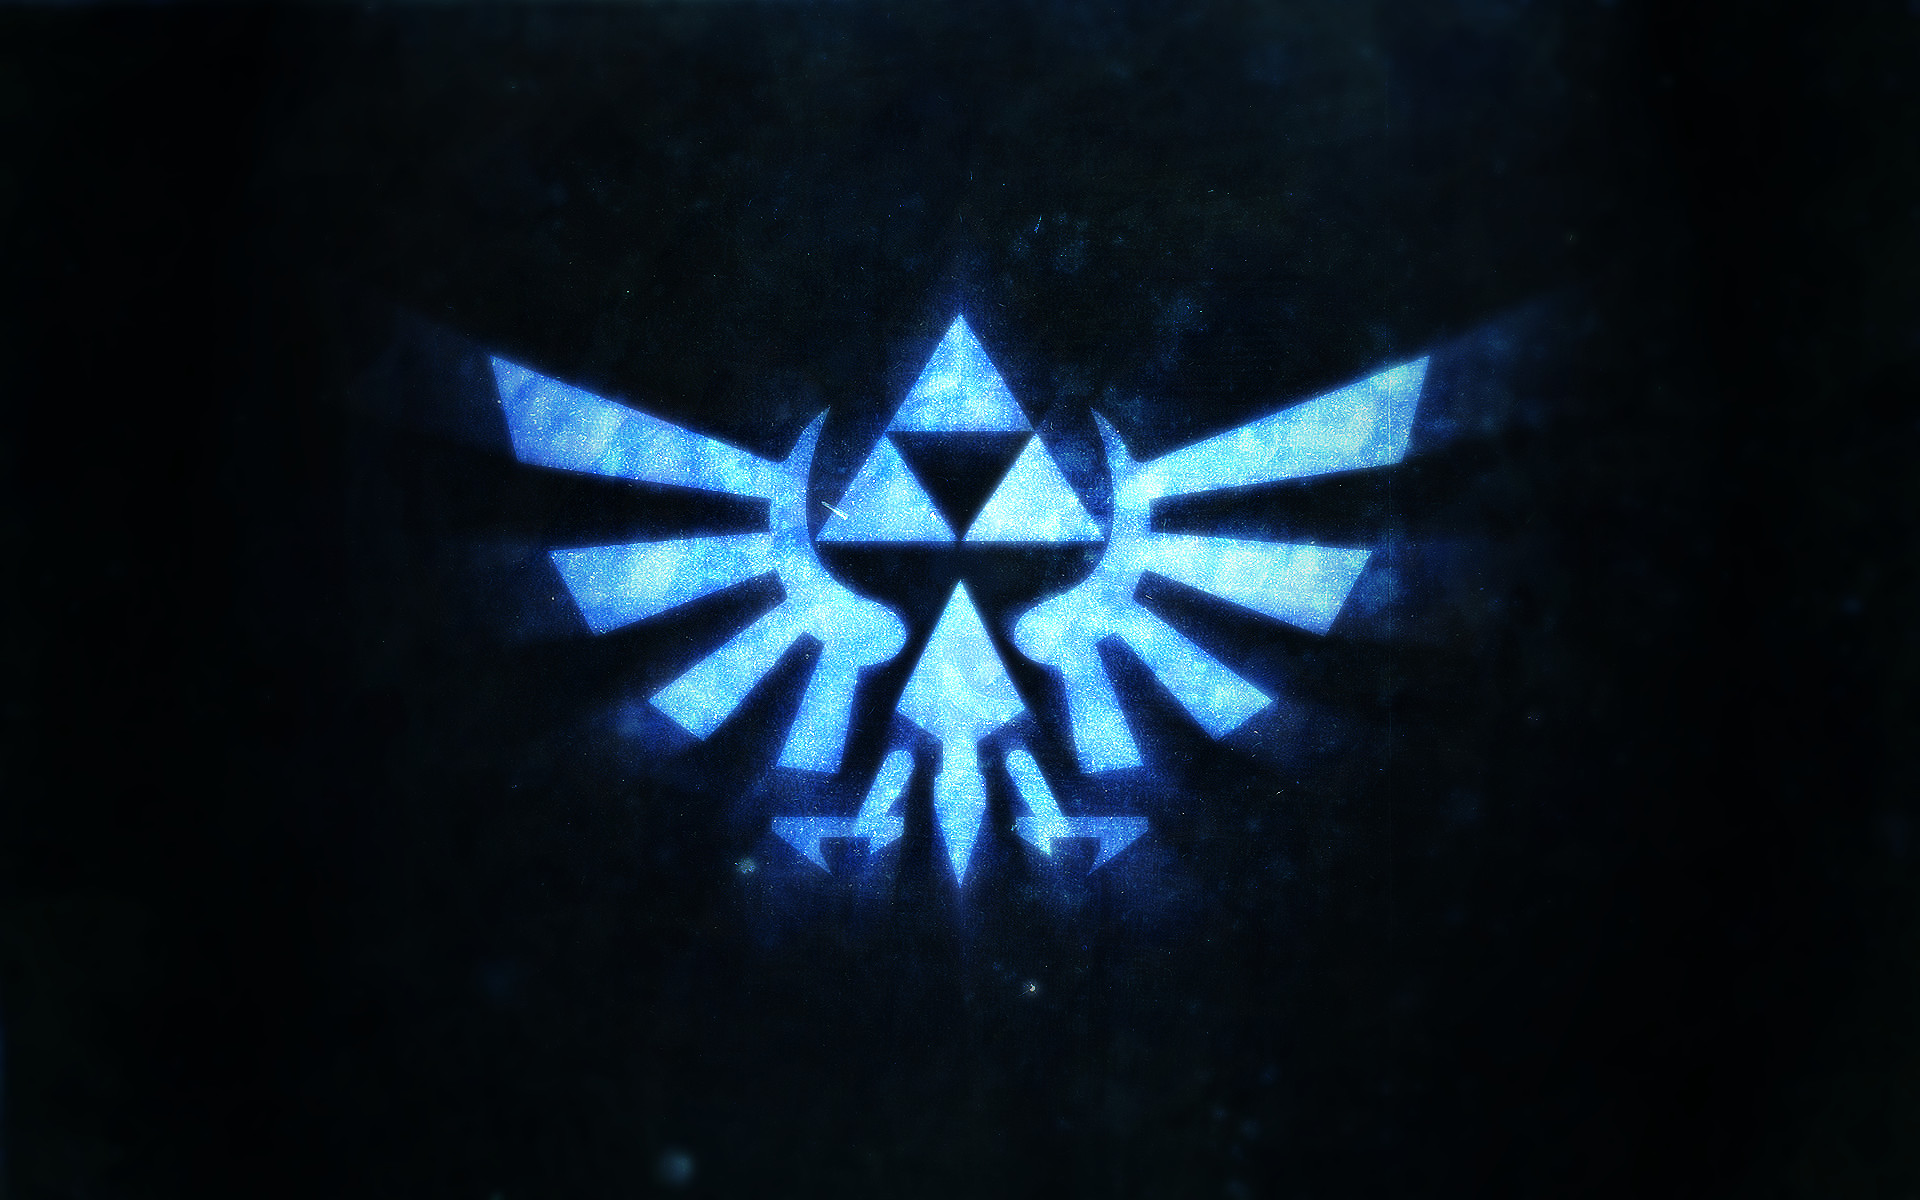 1920x1200 Legend Of Zelda - Wallpaper by 1nflames.deviantart.com on @deviantART